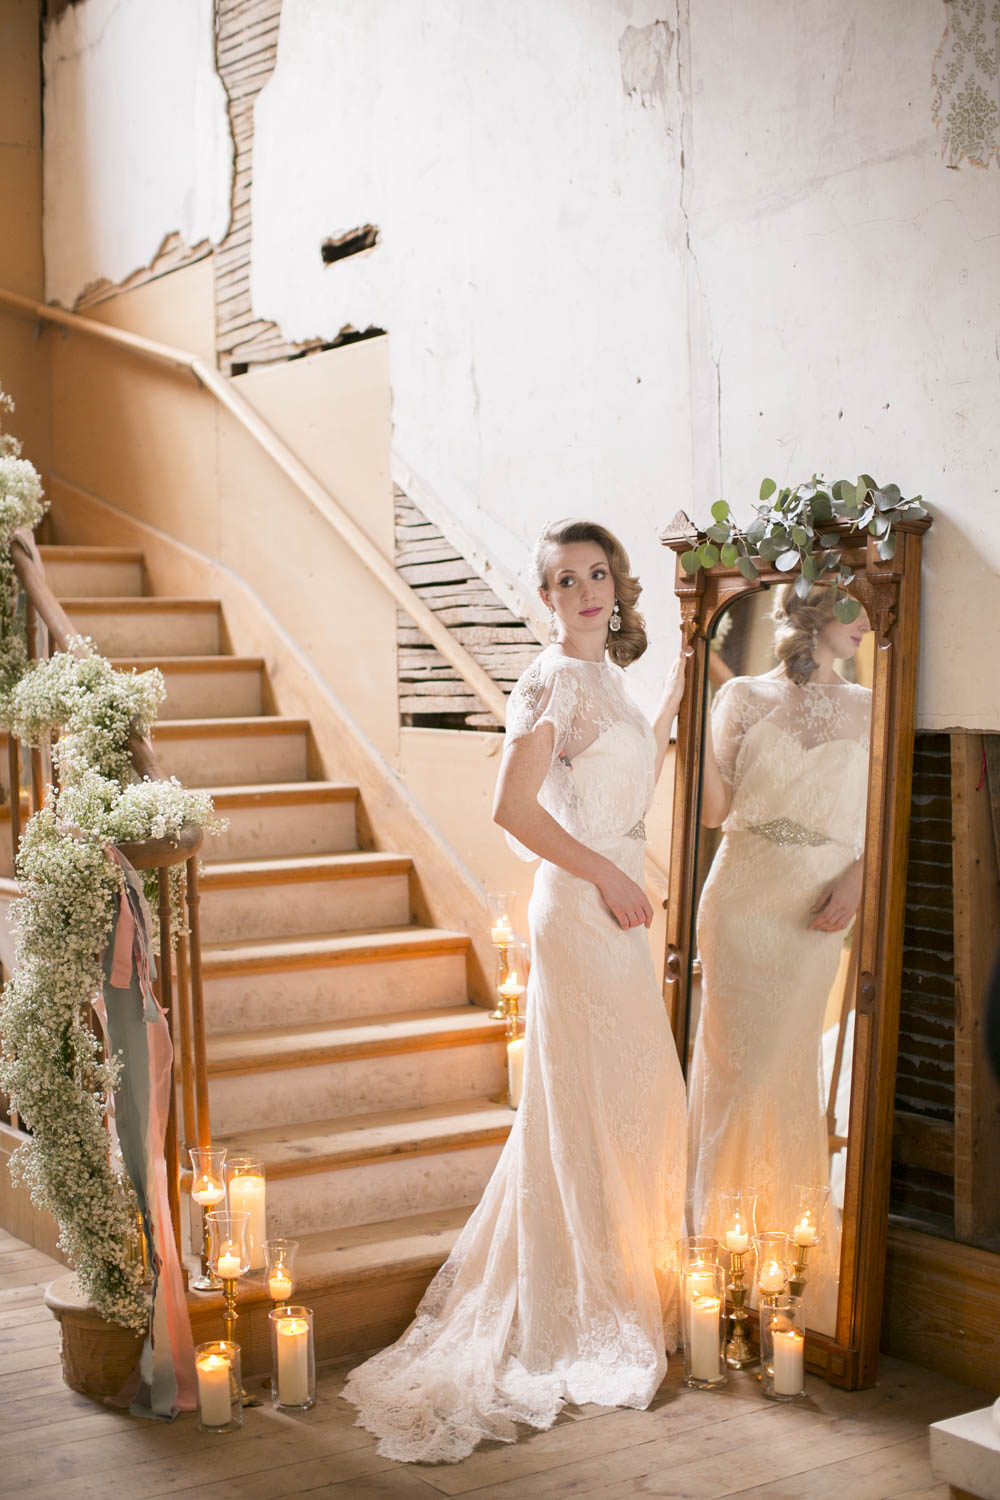 Elegant-Wedding-Magazine-Wedding-Feature-Vintage-Reflections-Editorial-photographers-Willowbank-Estate-photo-by-eva-derrick-photography-philosophy-studios-007.JPG